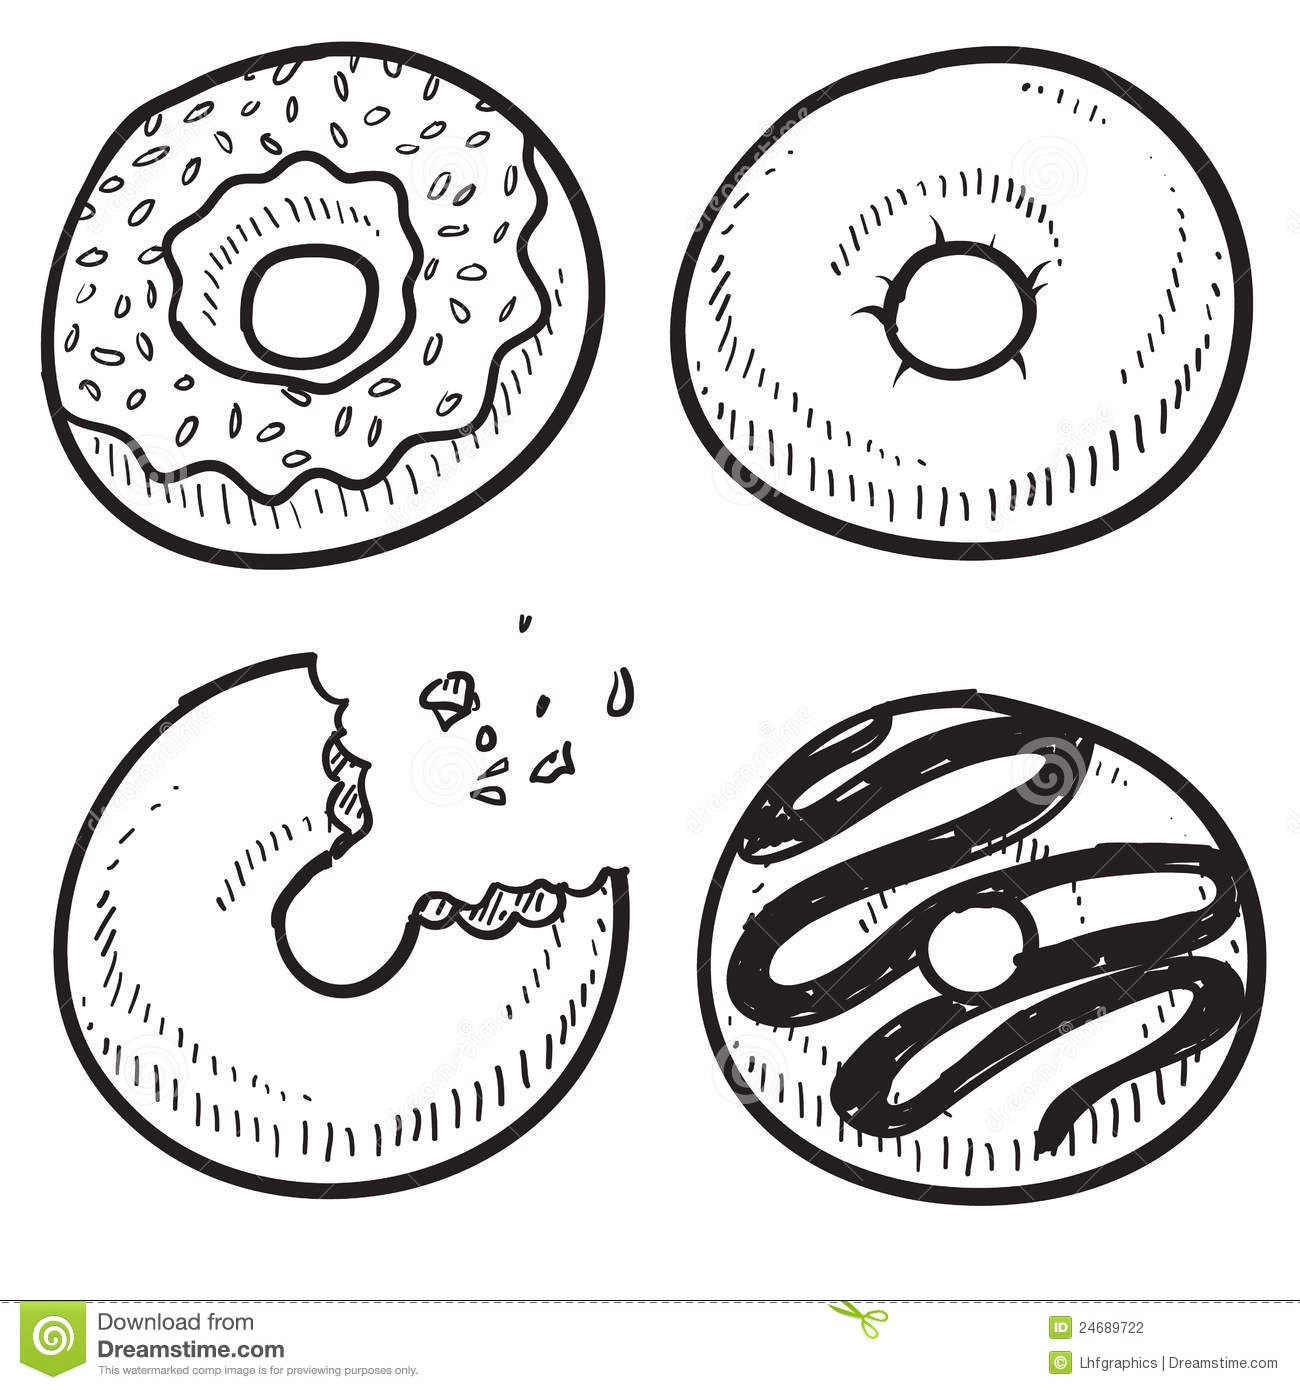 ... in vector format. Set includes glazed, cake, frosted, and chocolate